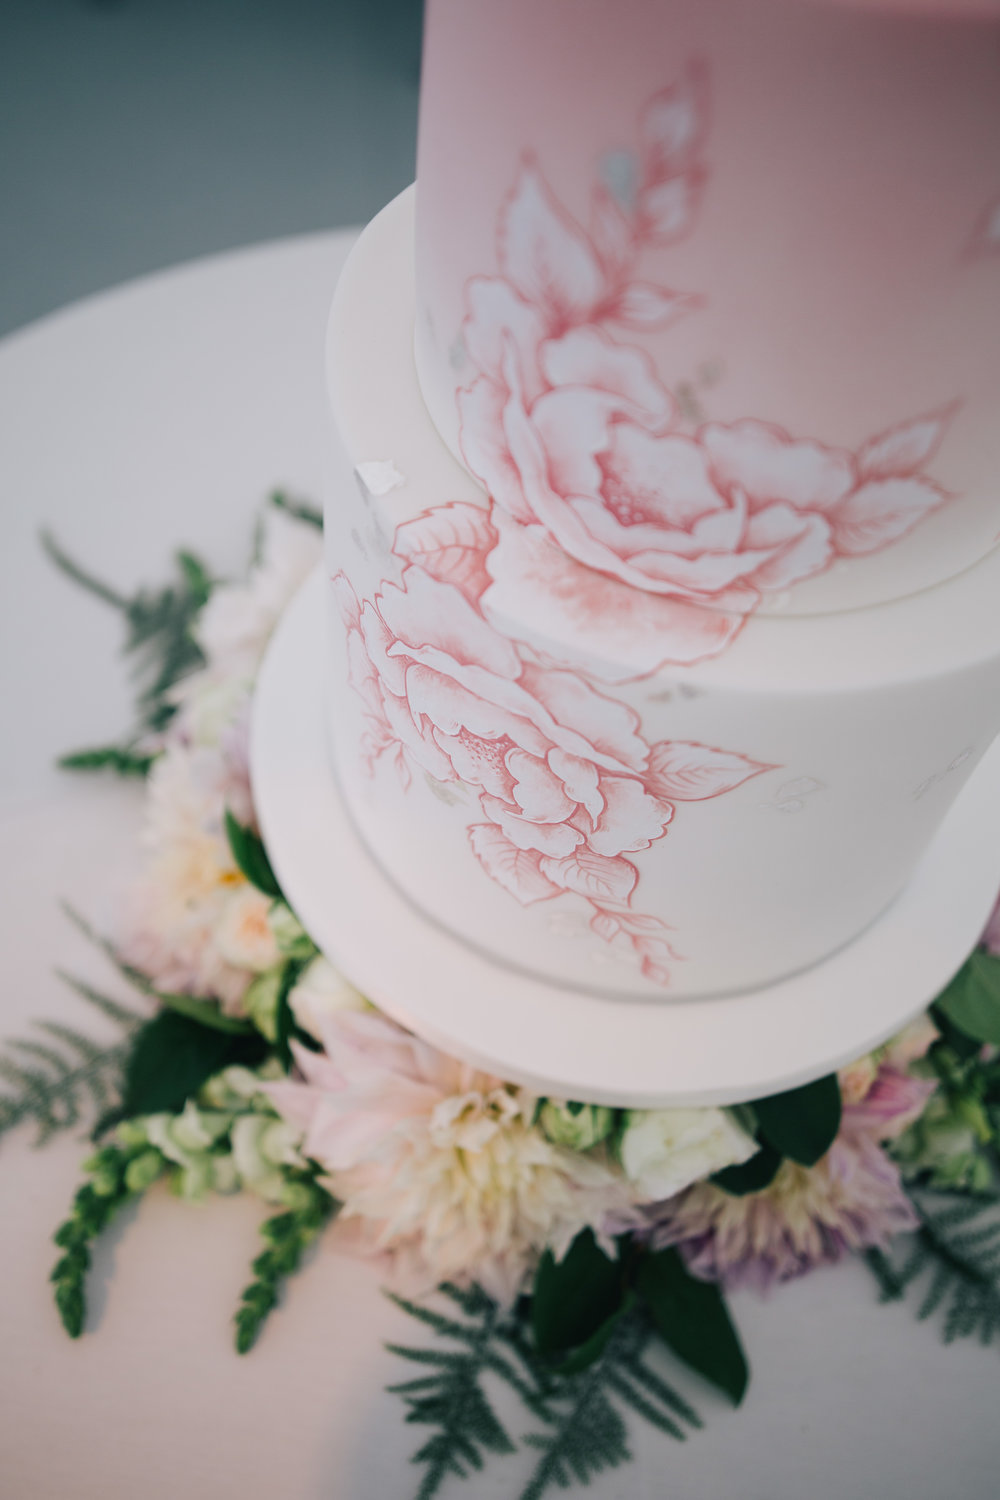 BLUSH OMBRE ROSES  An elegant 3 tier cake with a delicate blush ombre,hand painted with monochrome blooms in white and pink with touches of silver leaf.